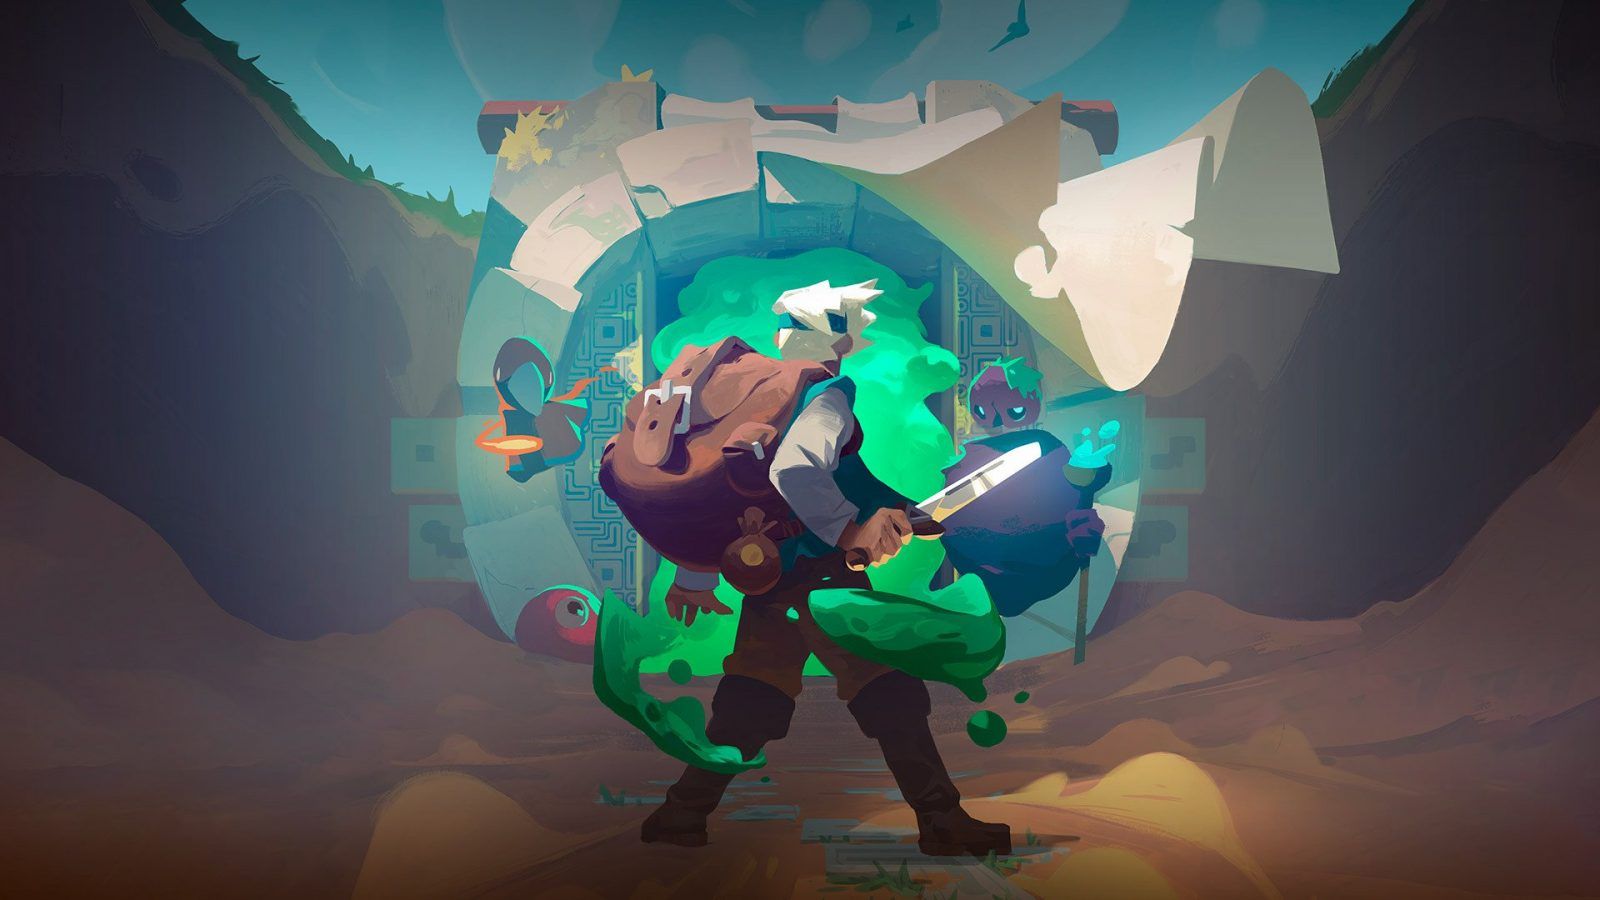 Epic Games Store's Next Two Free Games Are Moonlighter and This War of Mine